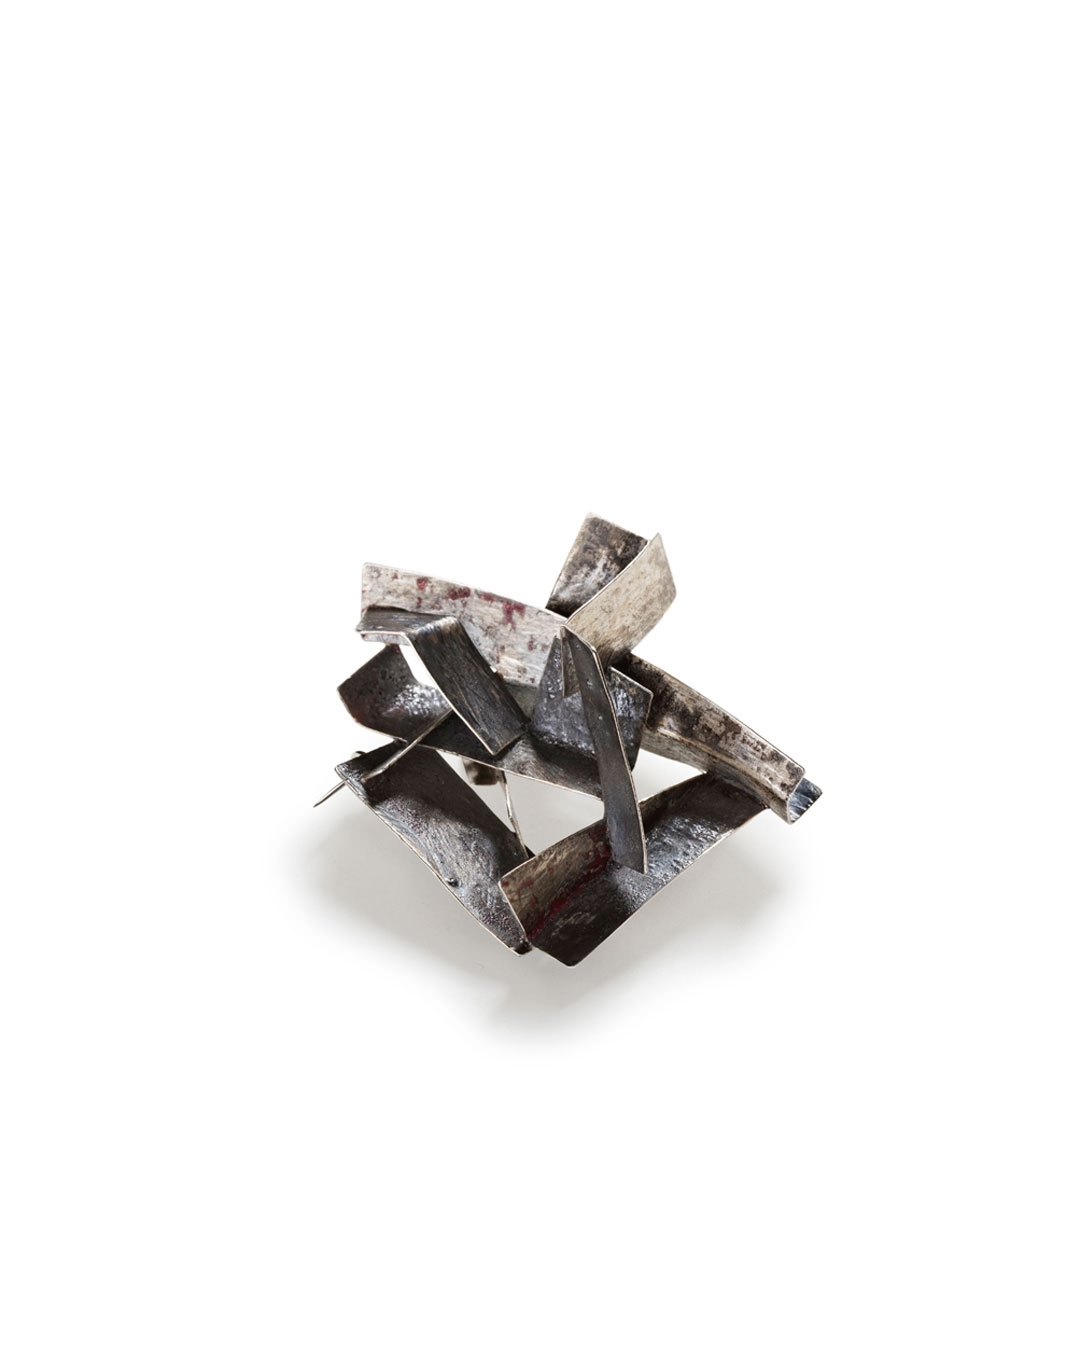 Antje Bräuer, Black Corners, 2013, brooch; silver, niello, pigment, steel, 48 x 58 x 33 mm, €750